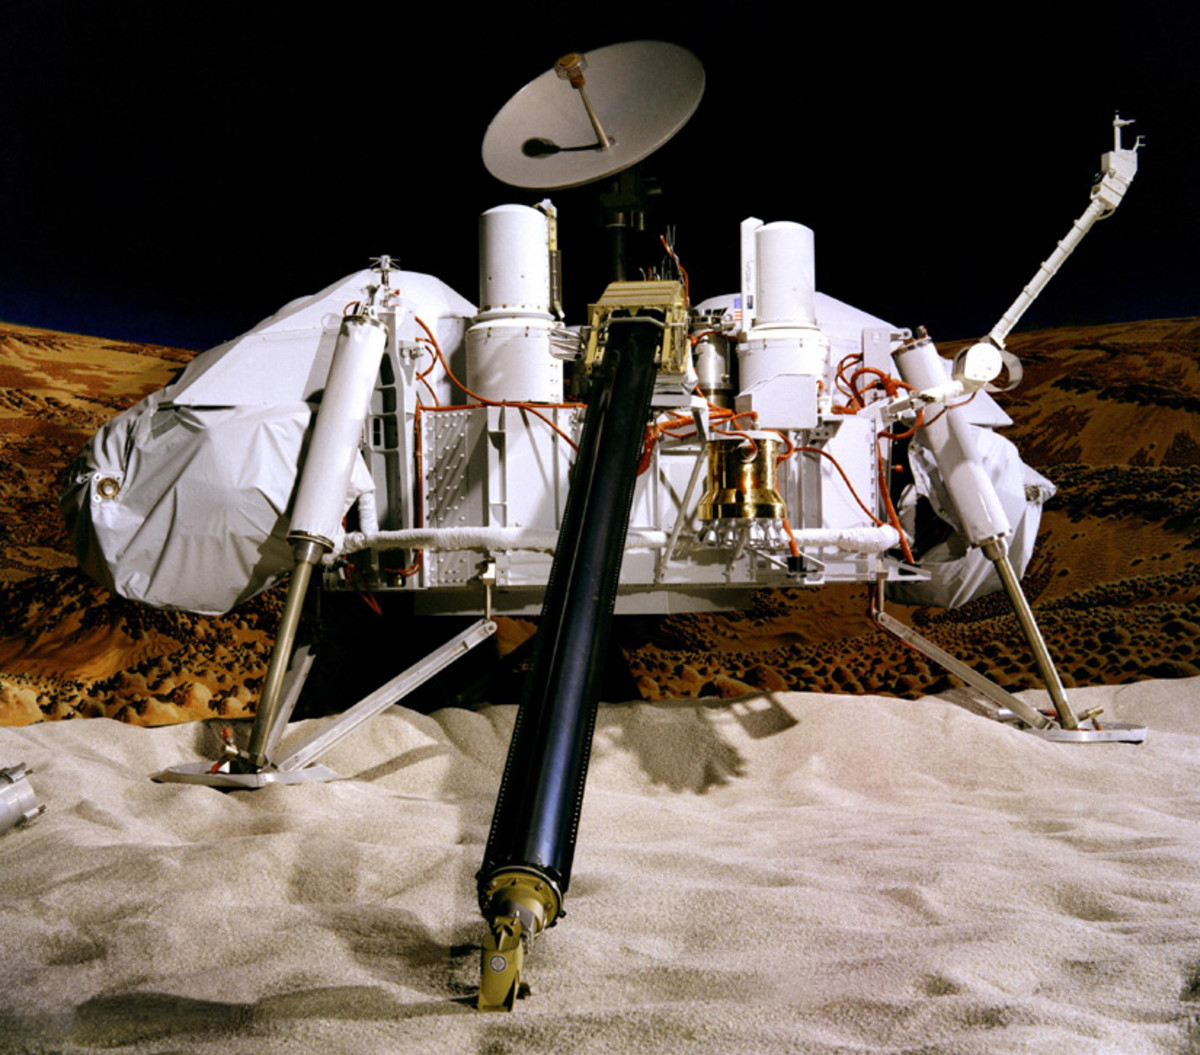 The Viking Lander, the first probe from the U.S. Landed in 1976 on Mars